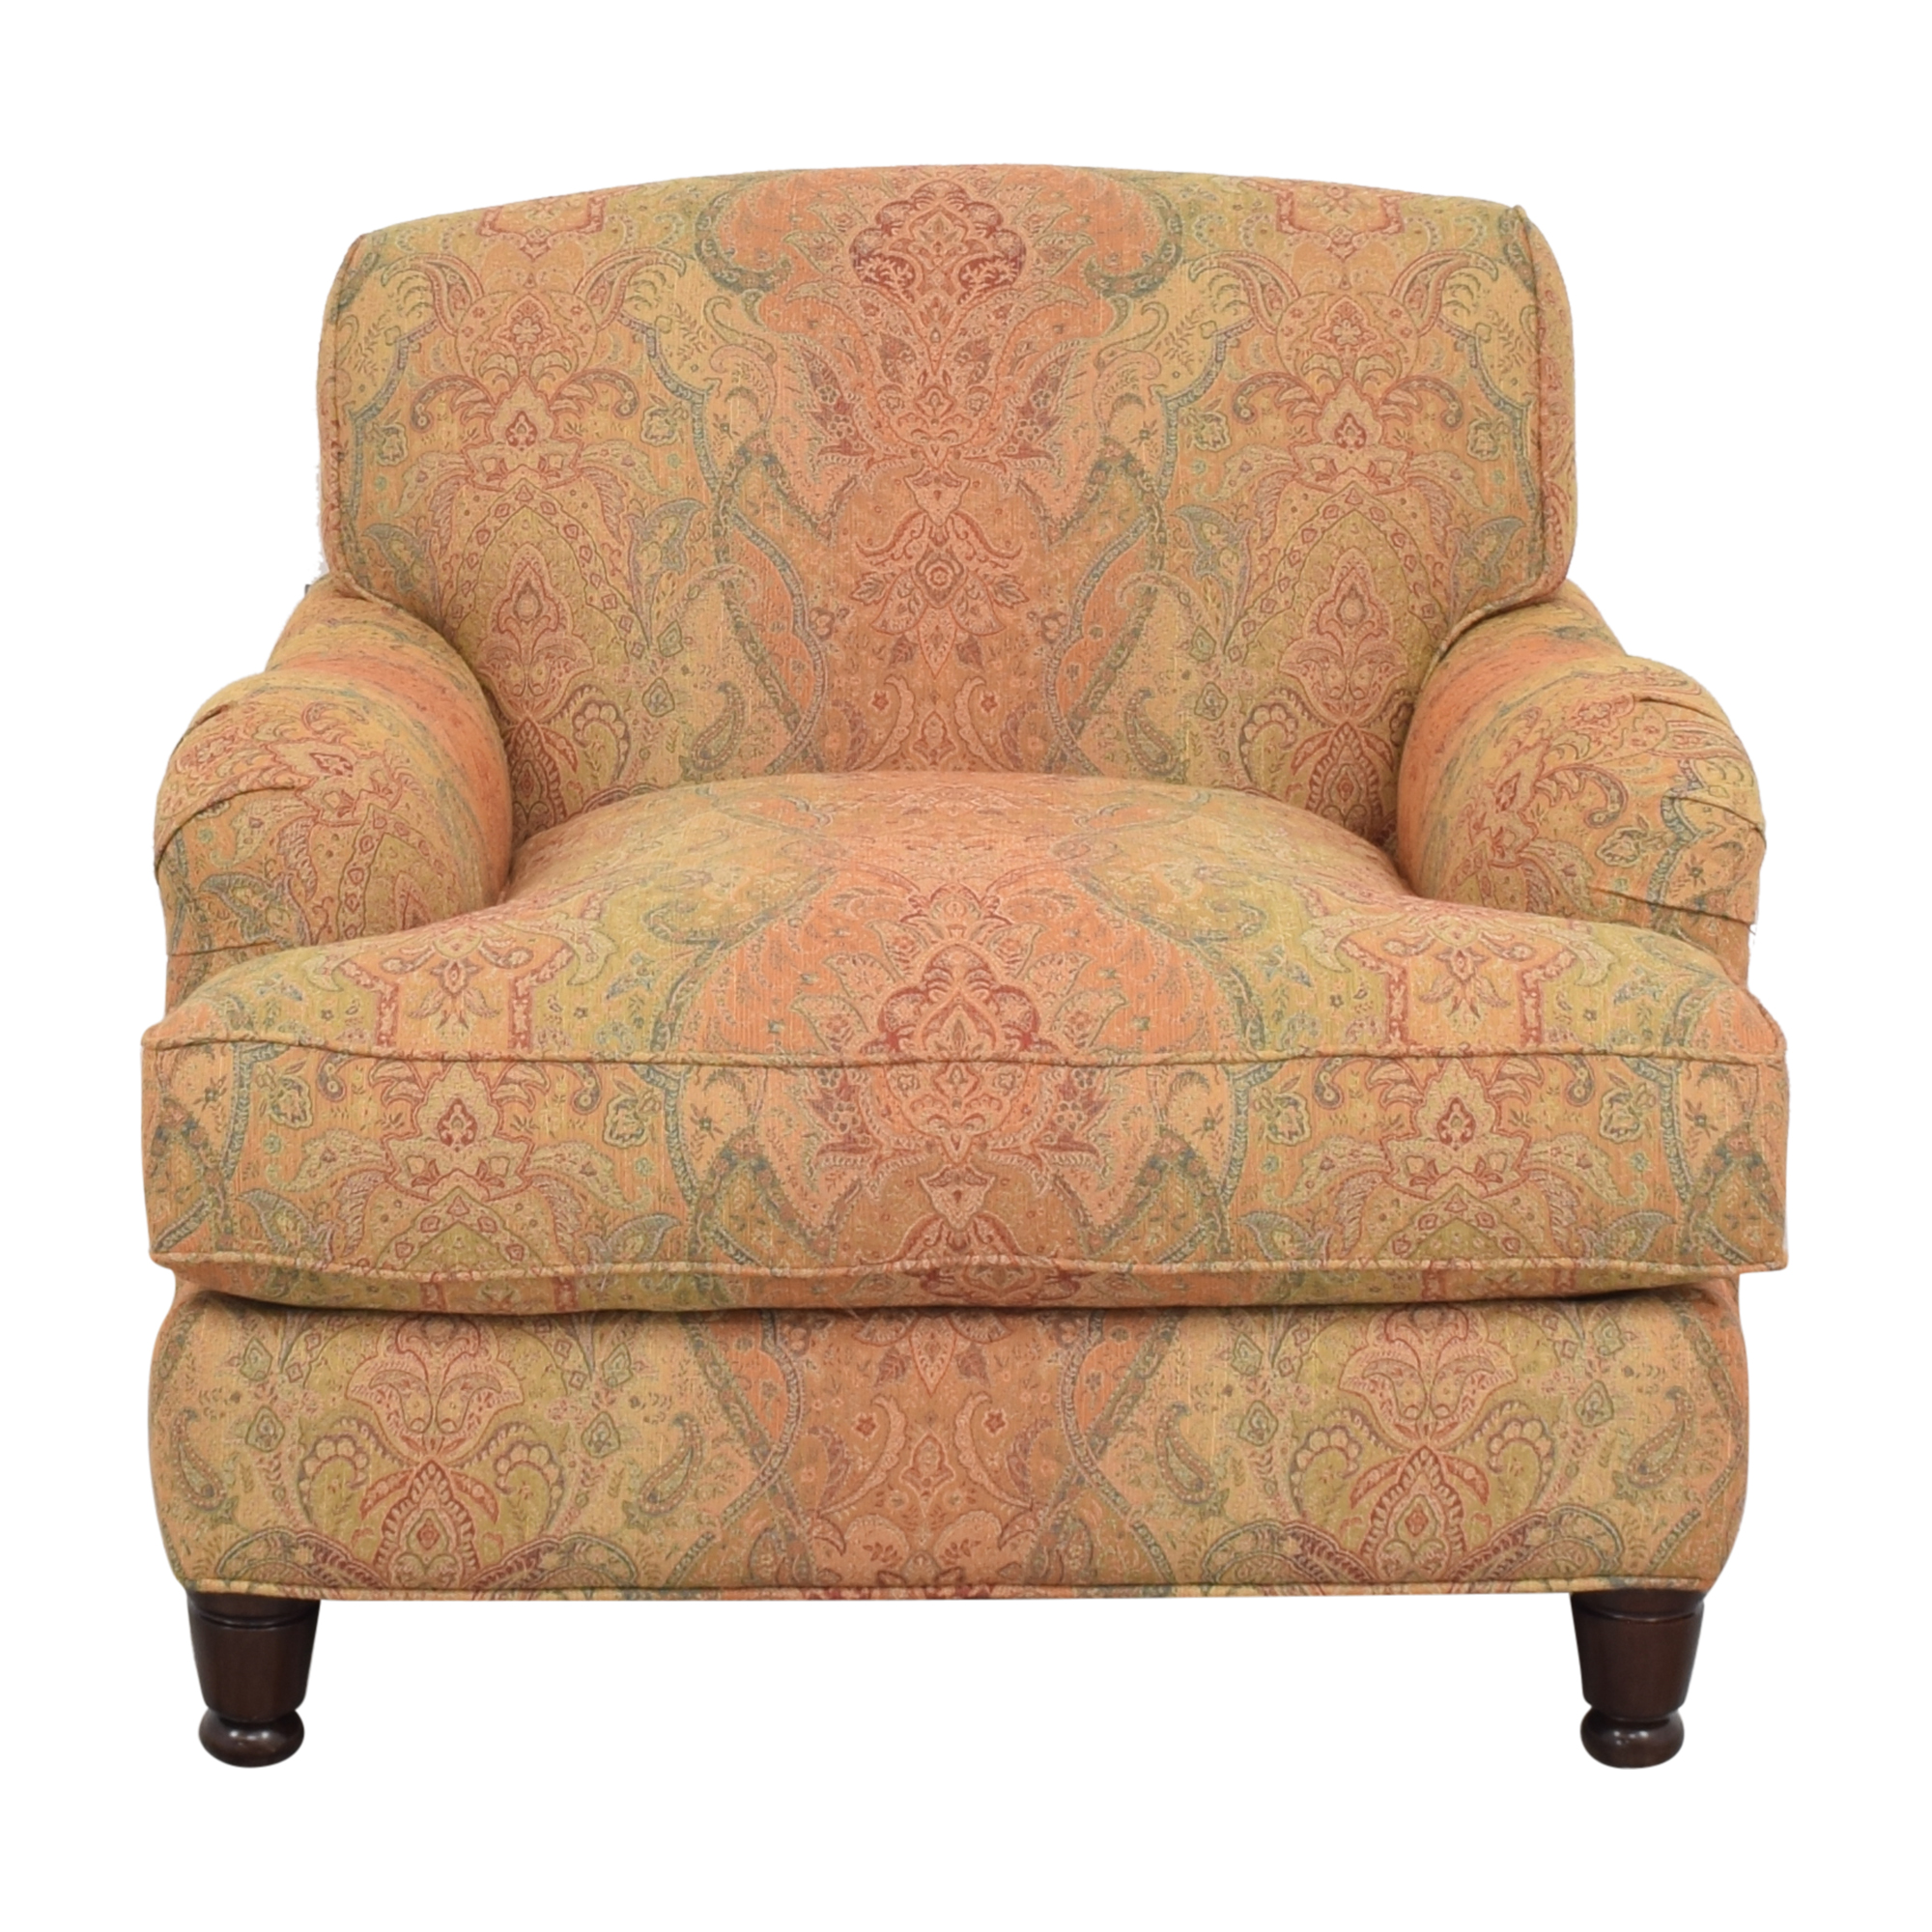 Macy's Macy's Paisley Accent Chair second hand